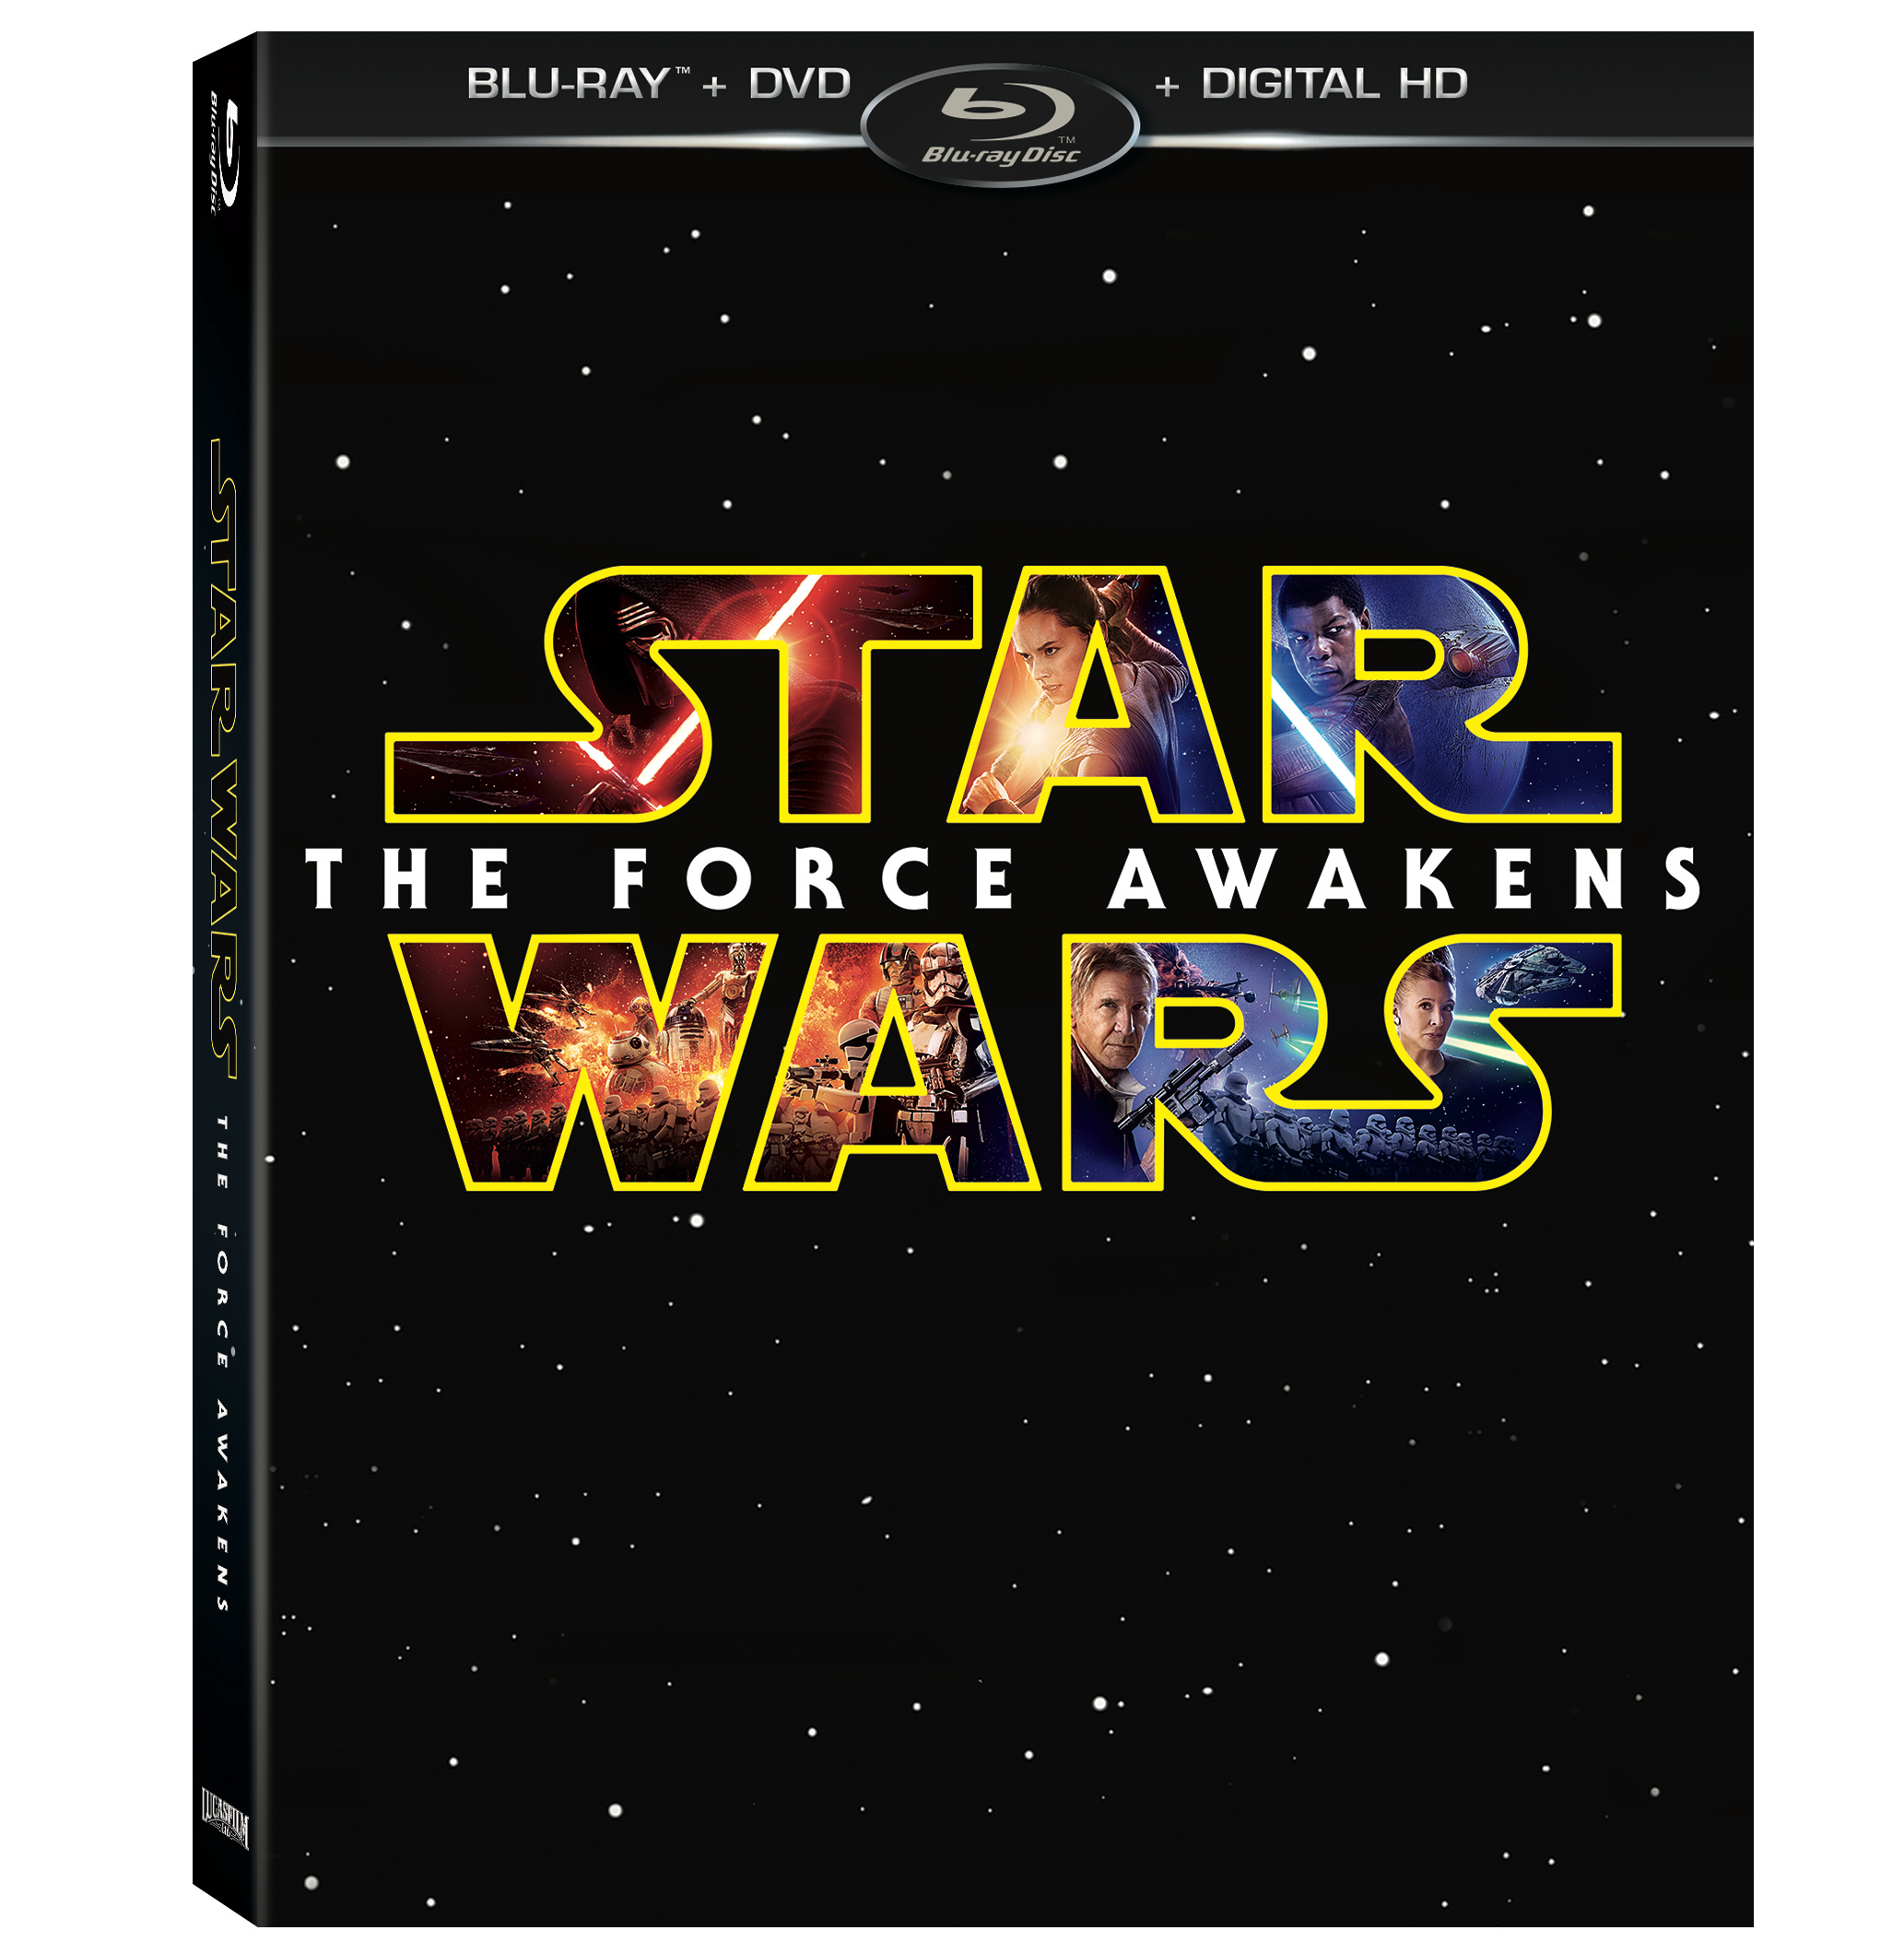 star wars the force awakens, star wars blu ray dvd, star wars extras, new dvd releases